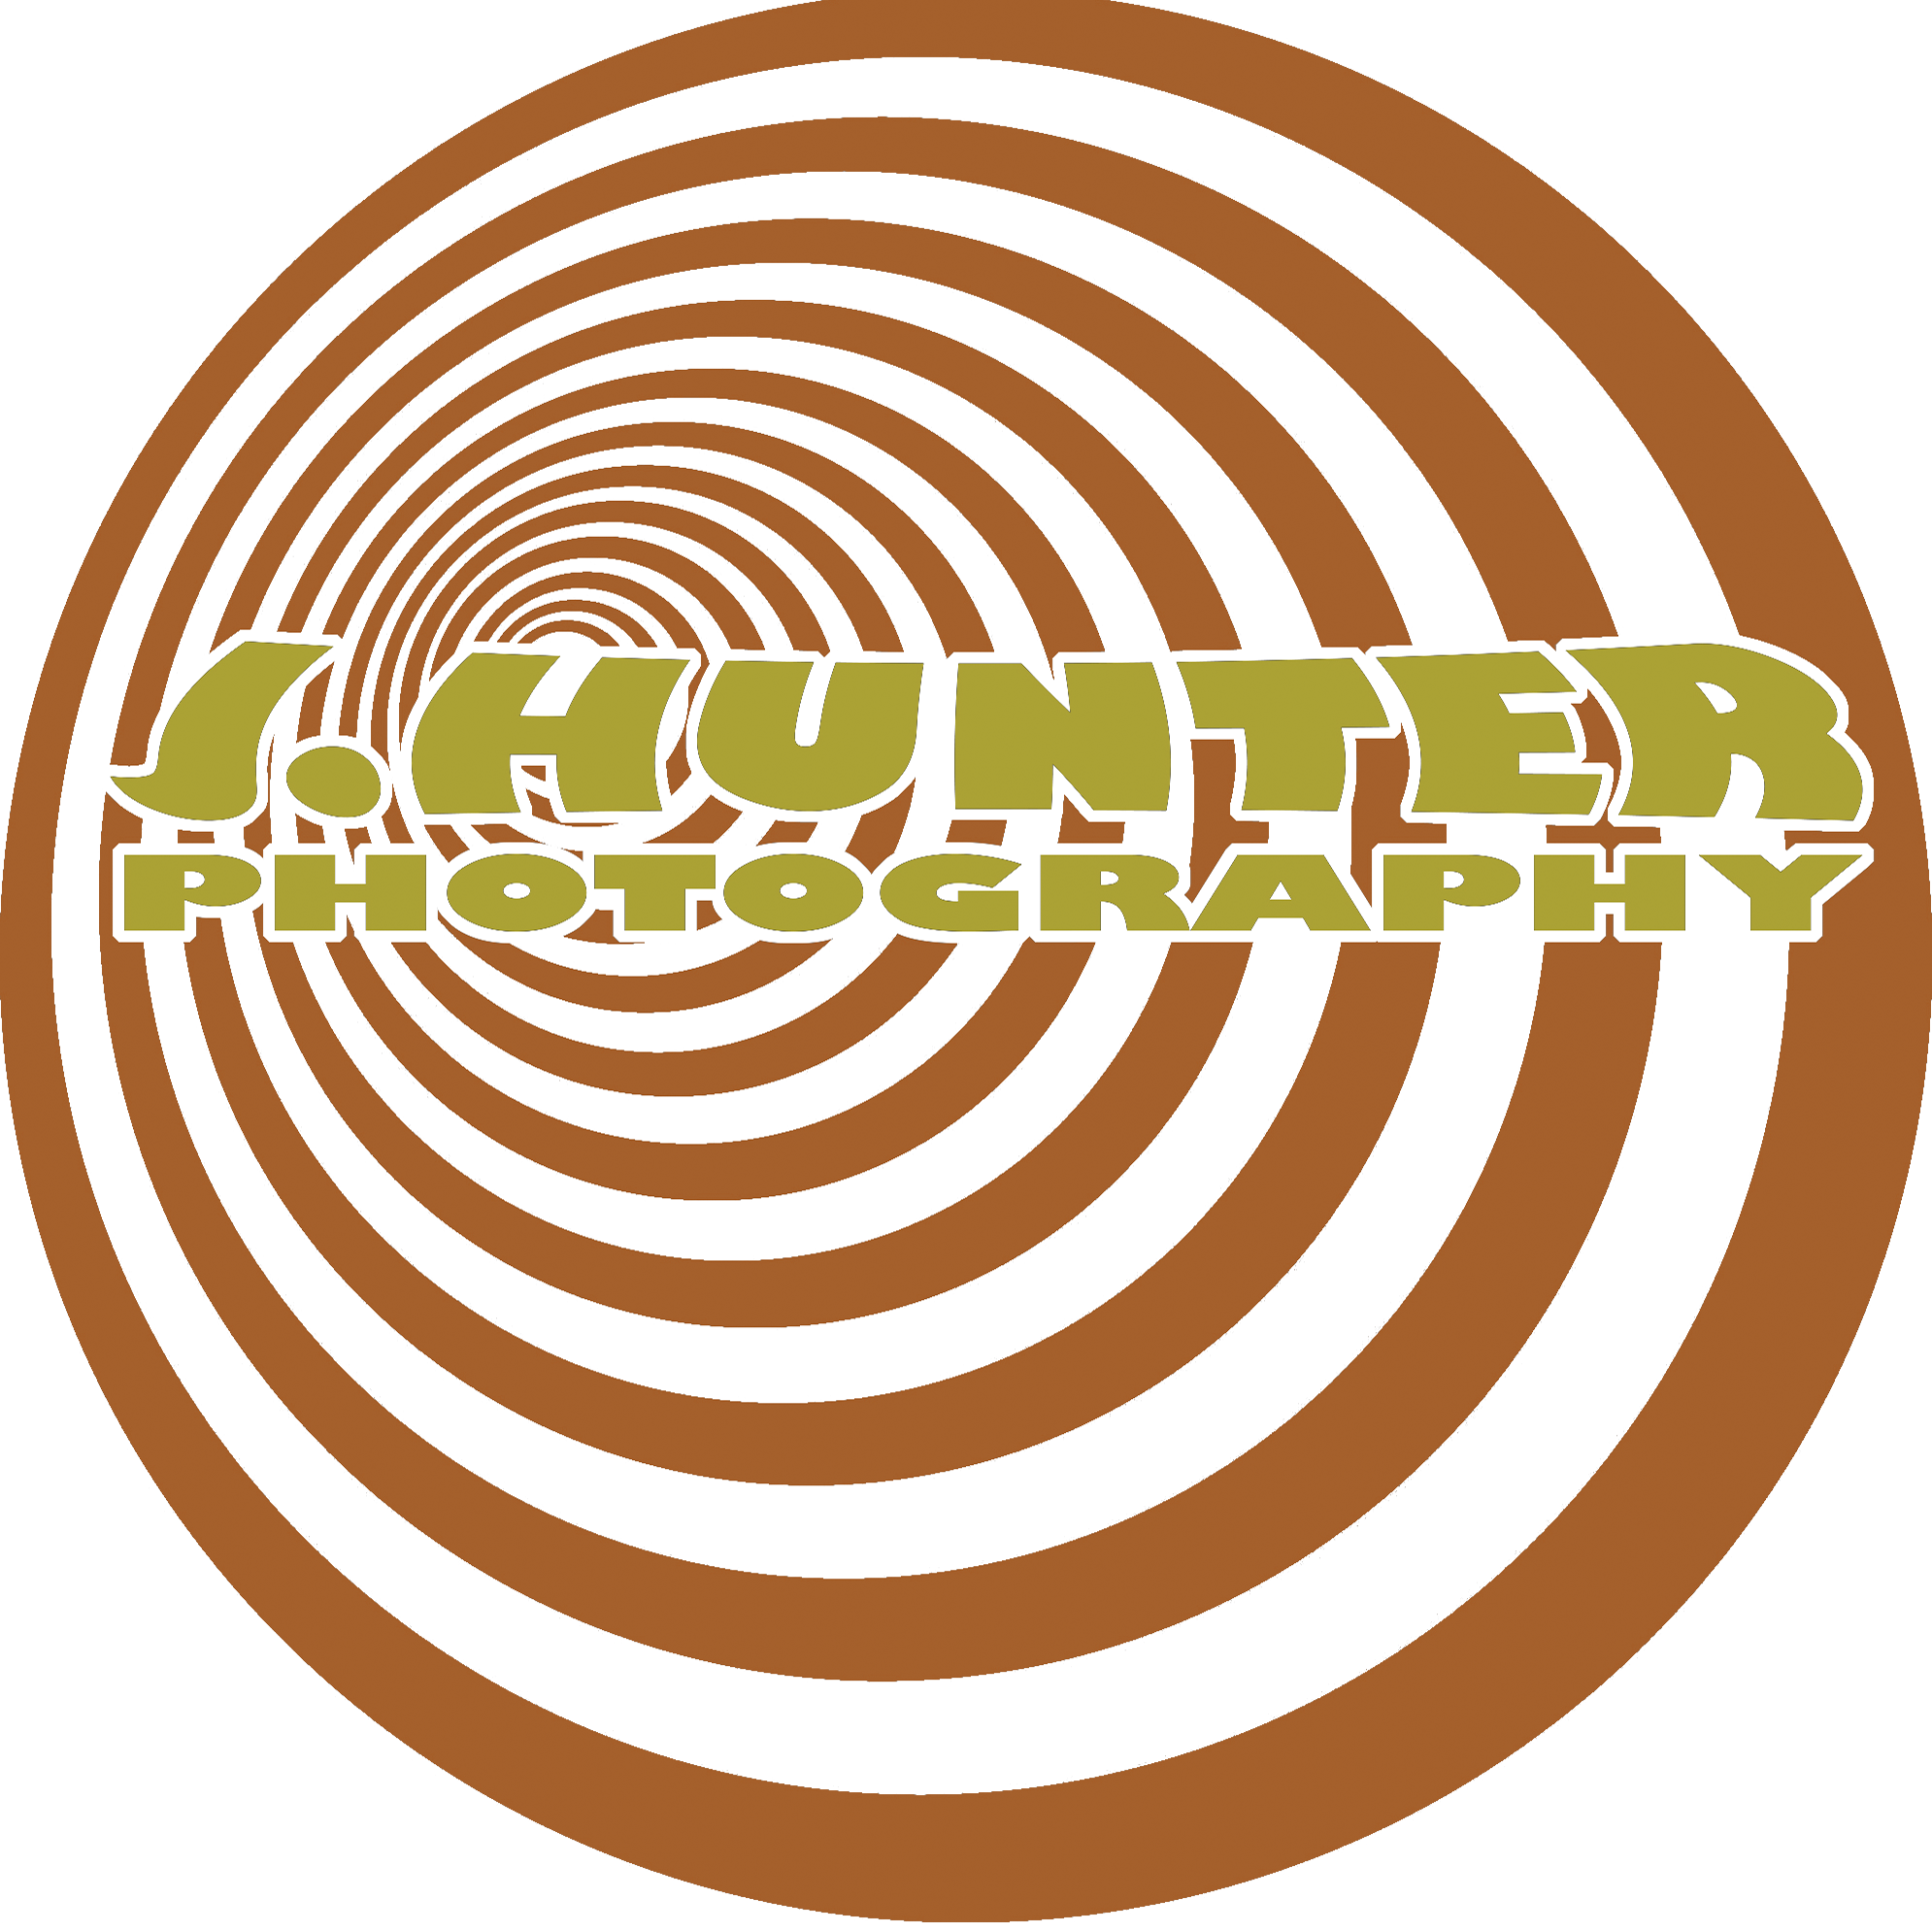 J Hunter Photography